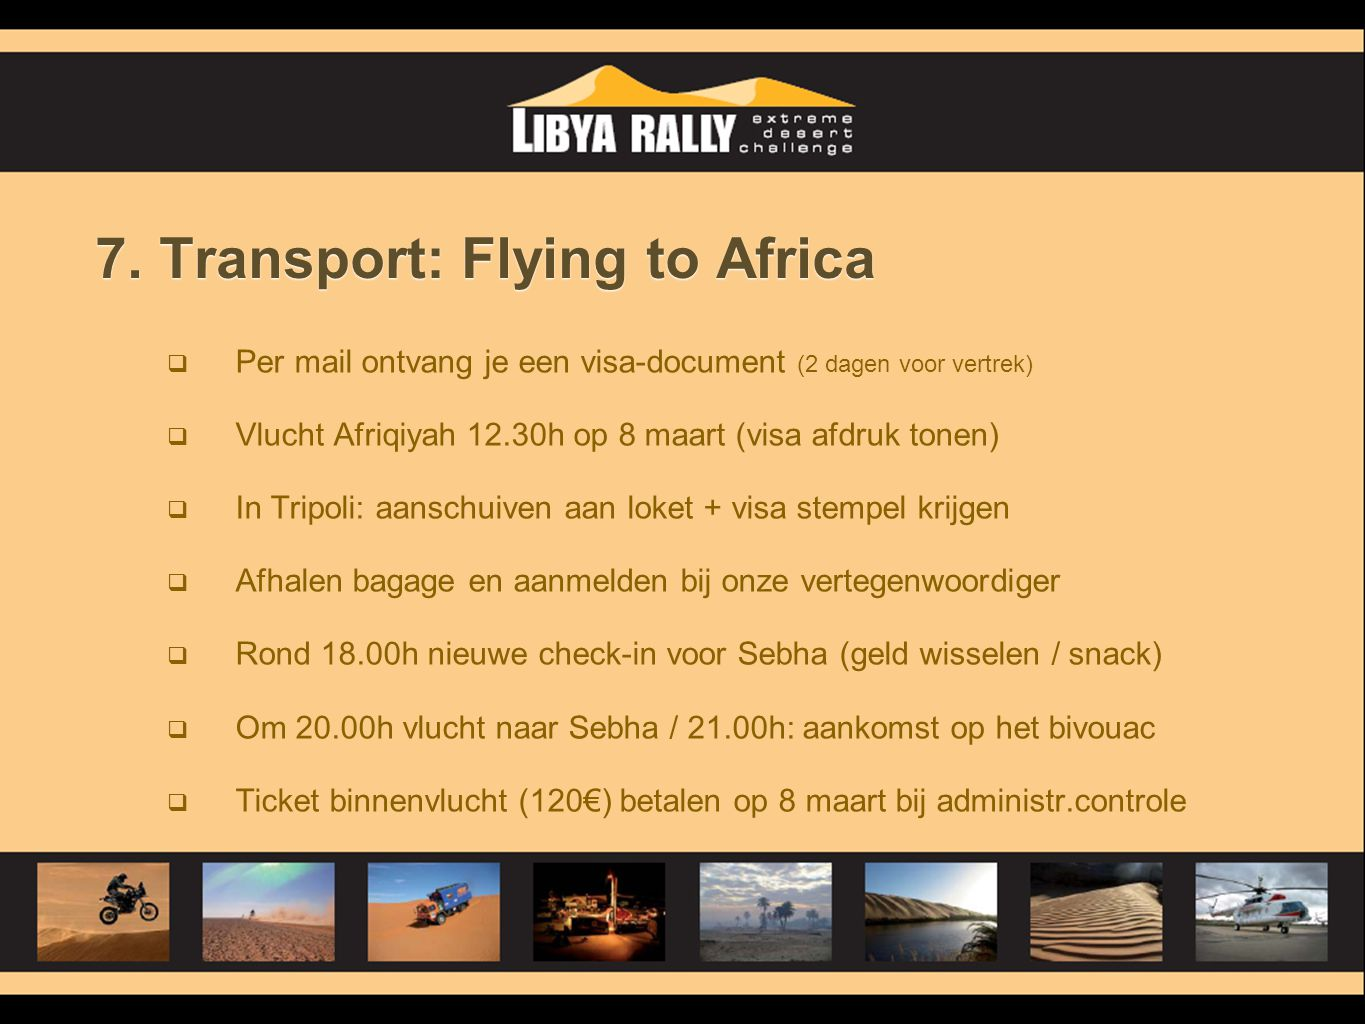 7. Transport: Flying to Africa